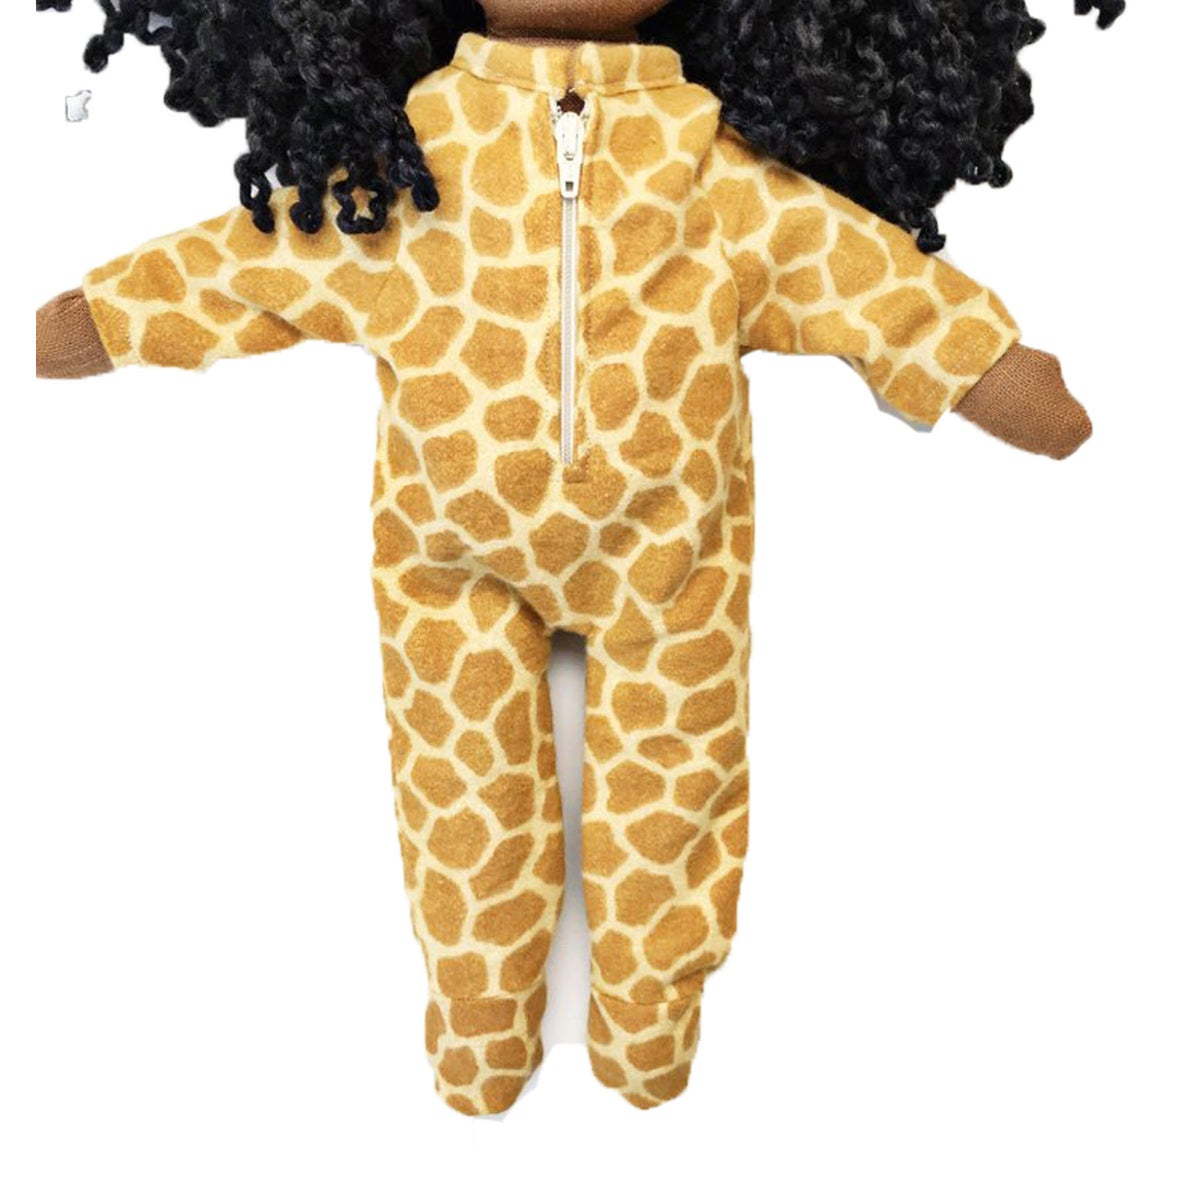 Giraffe Onesie - Doll Accessory (PLEASE NOTE: THIS ORDER WILL SHIP ON OR BEFORE NOV 30TH)